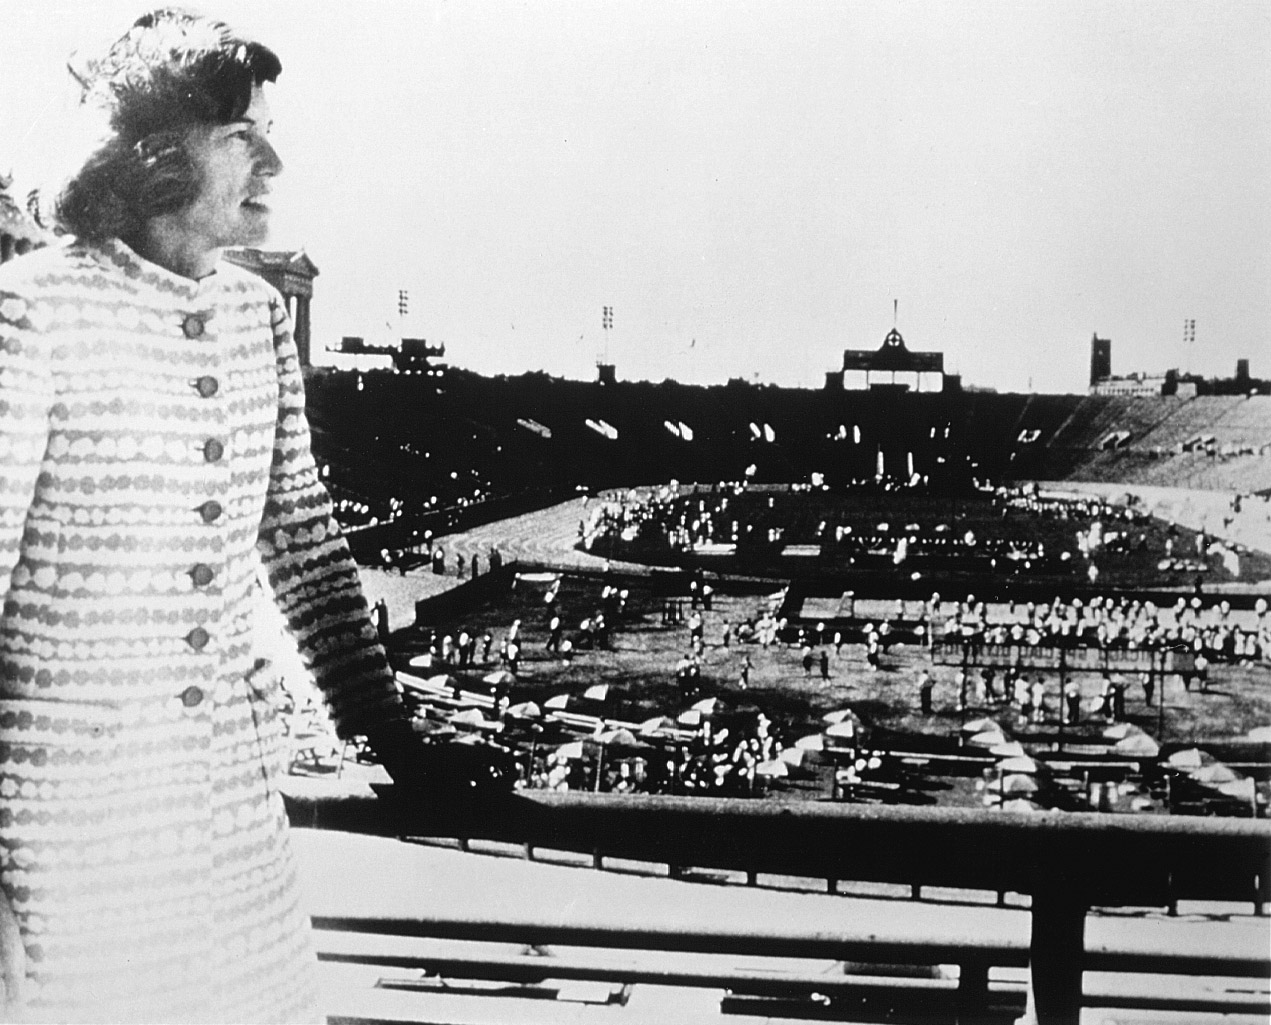 Eunice Kennedy Shriver looks over Soldier Field on July 20, 1968, as the debut Special Olympics Games get underway.